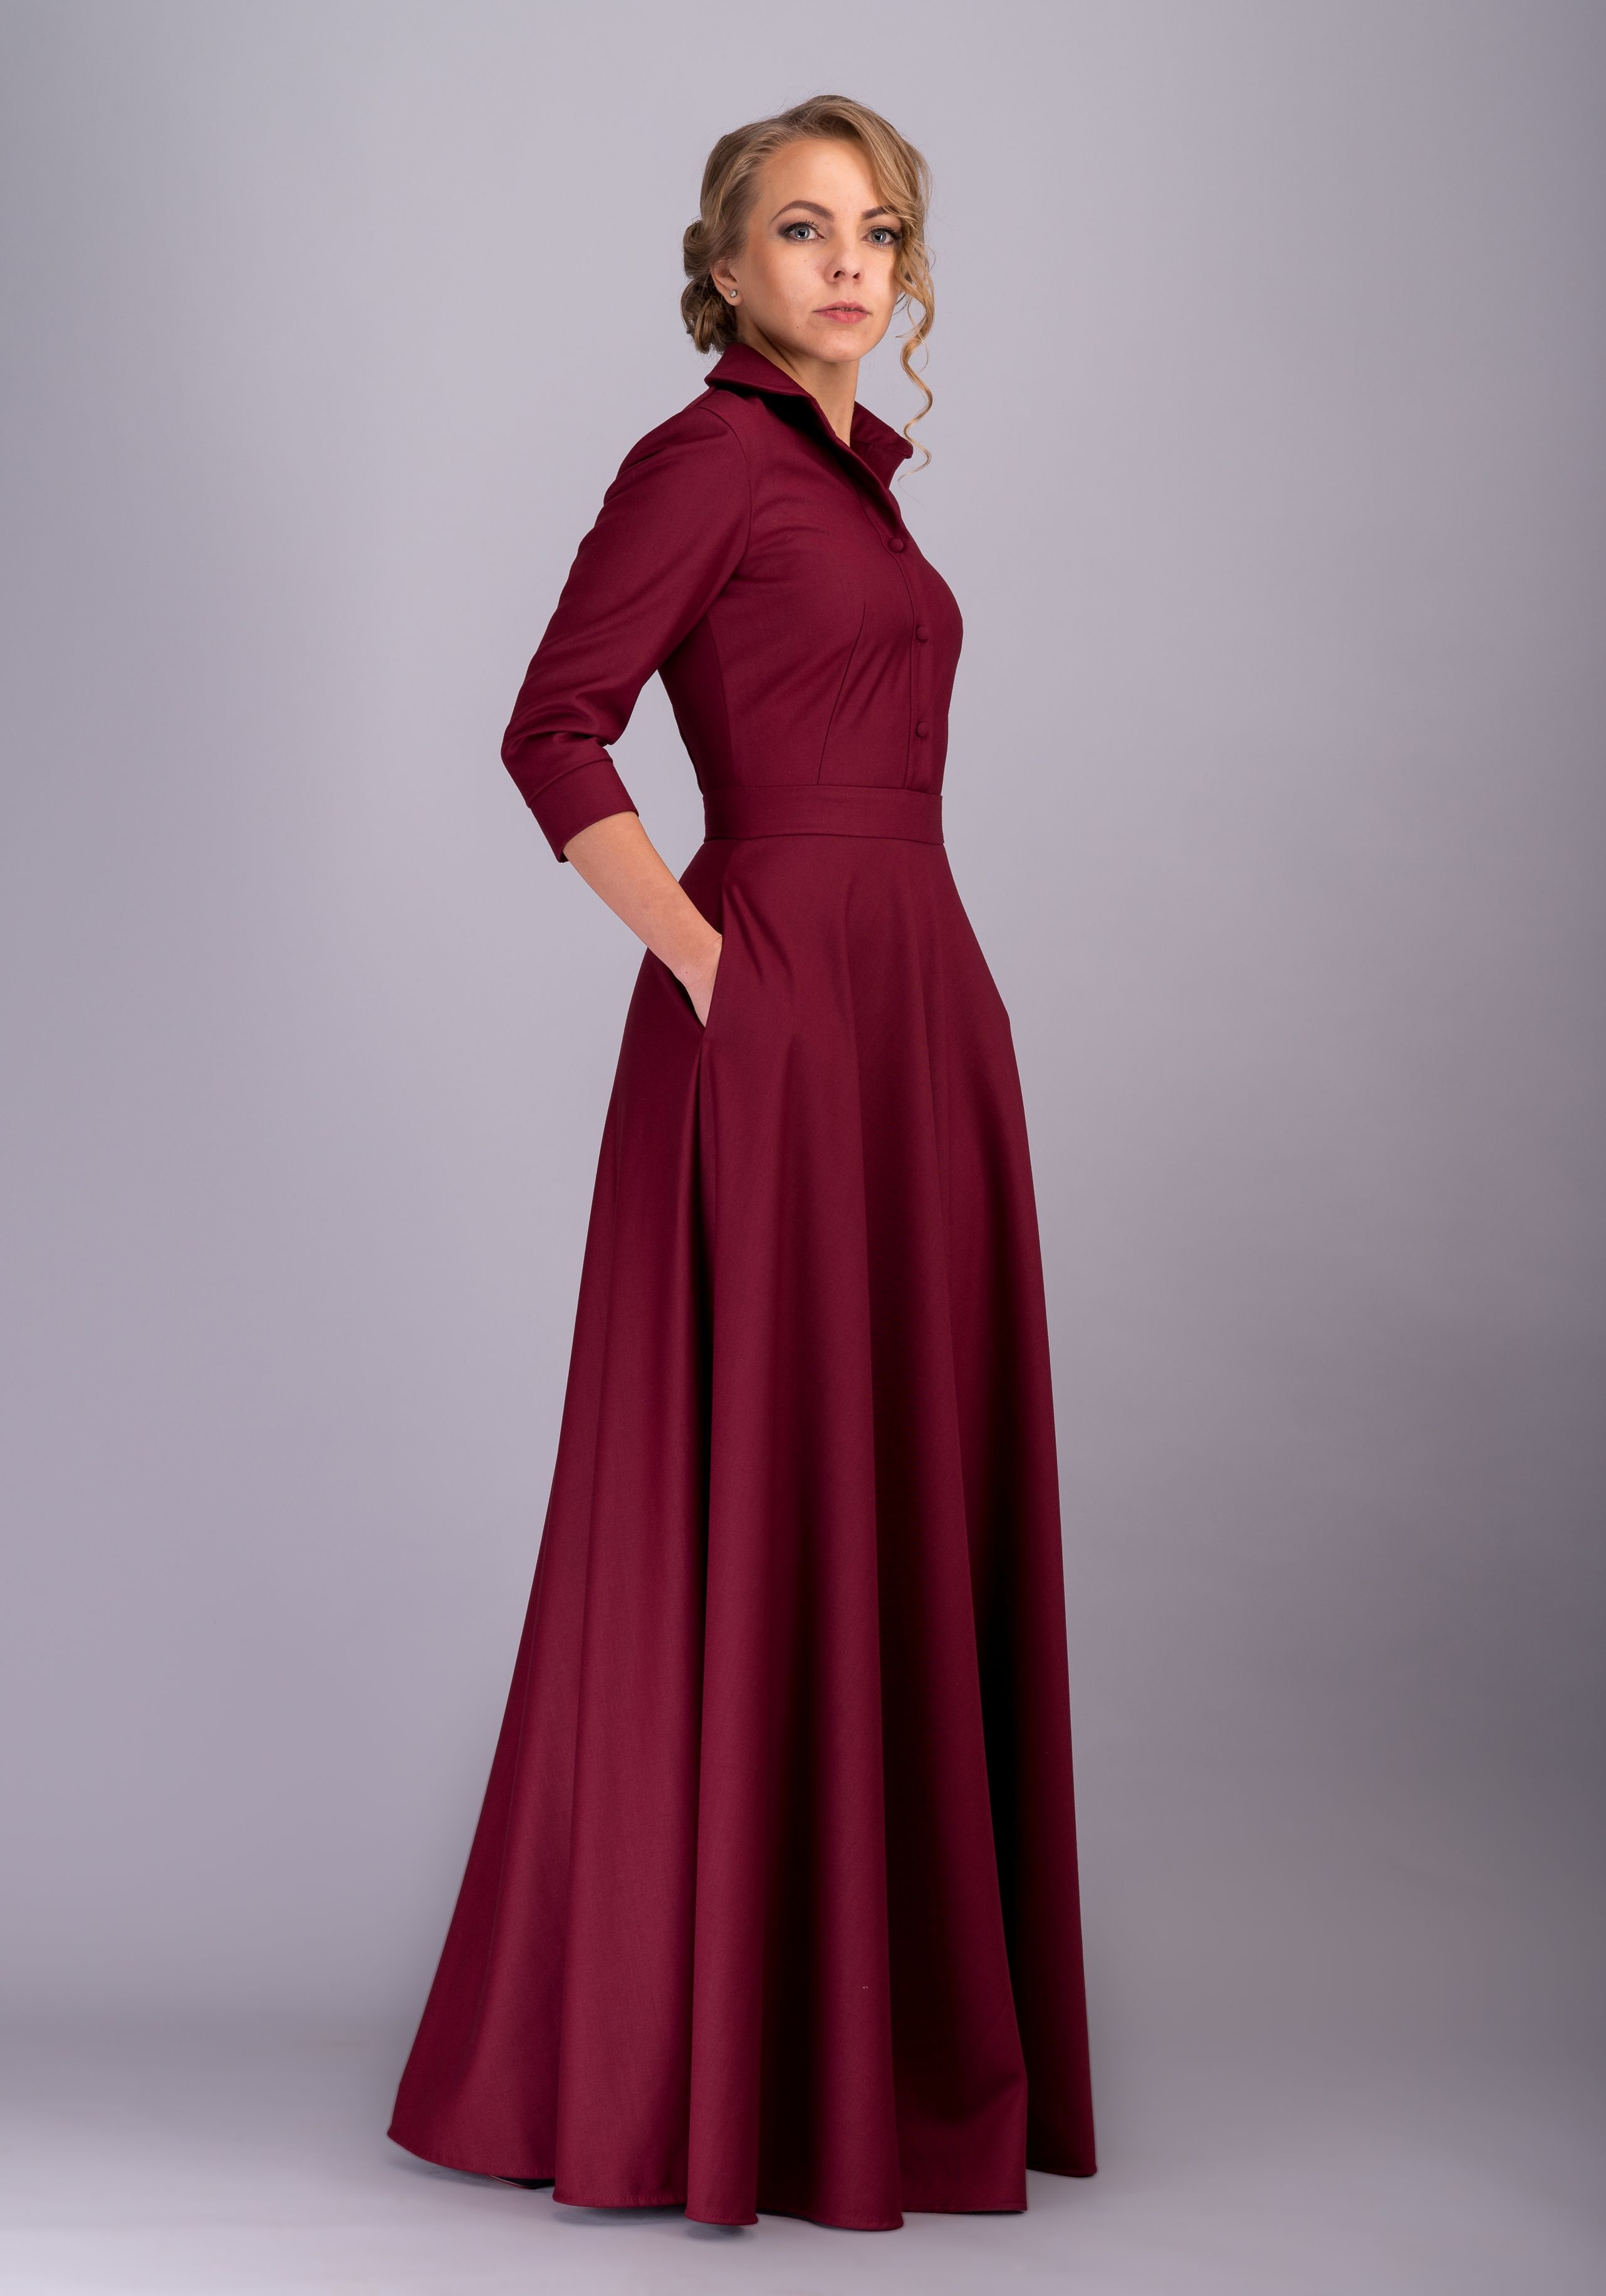 Pin By Duky On Robes D Hotesse Elegant Burgundy Dresses Modest Outfits Modest Dresses